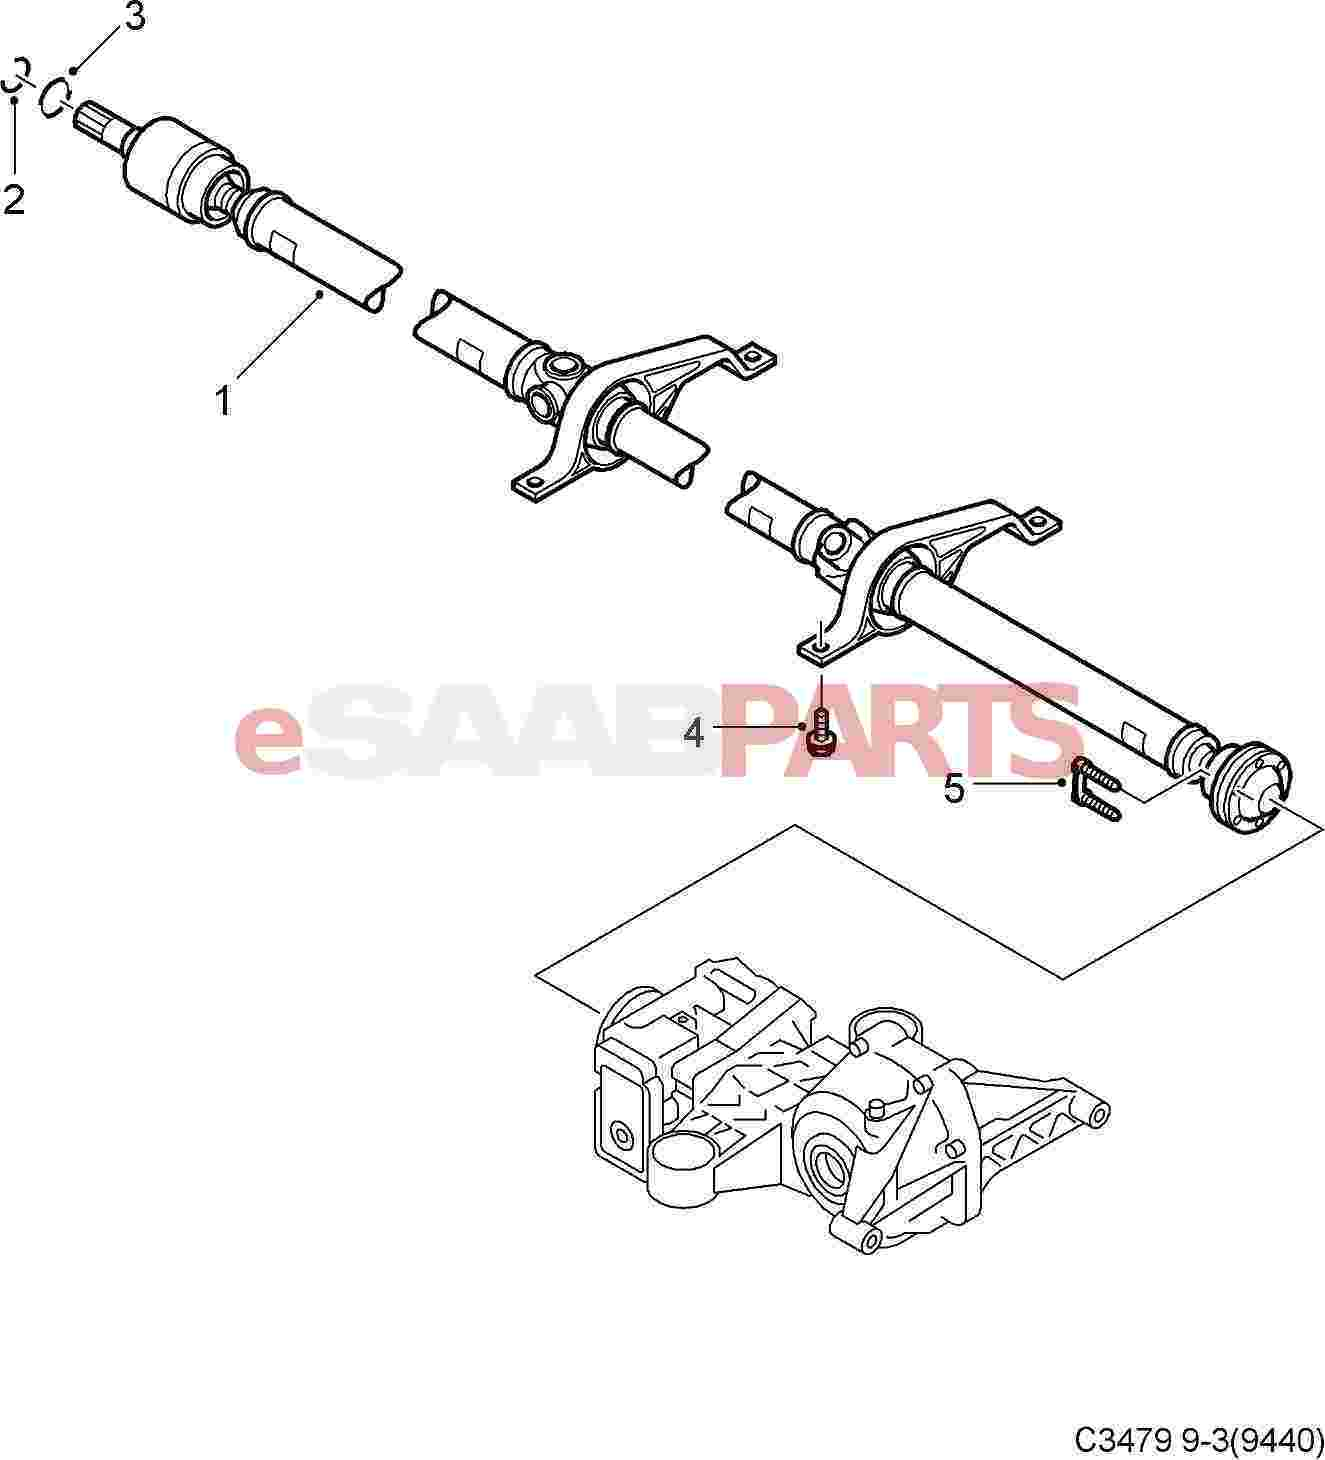 Saab Xwd 9 3 Drive Shaft Prop Shaft 3 Piece